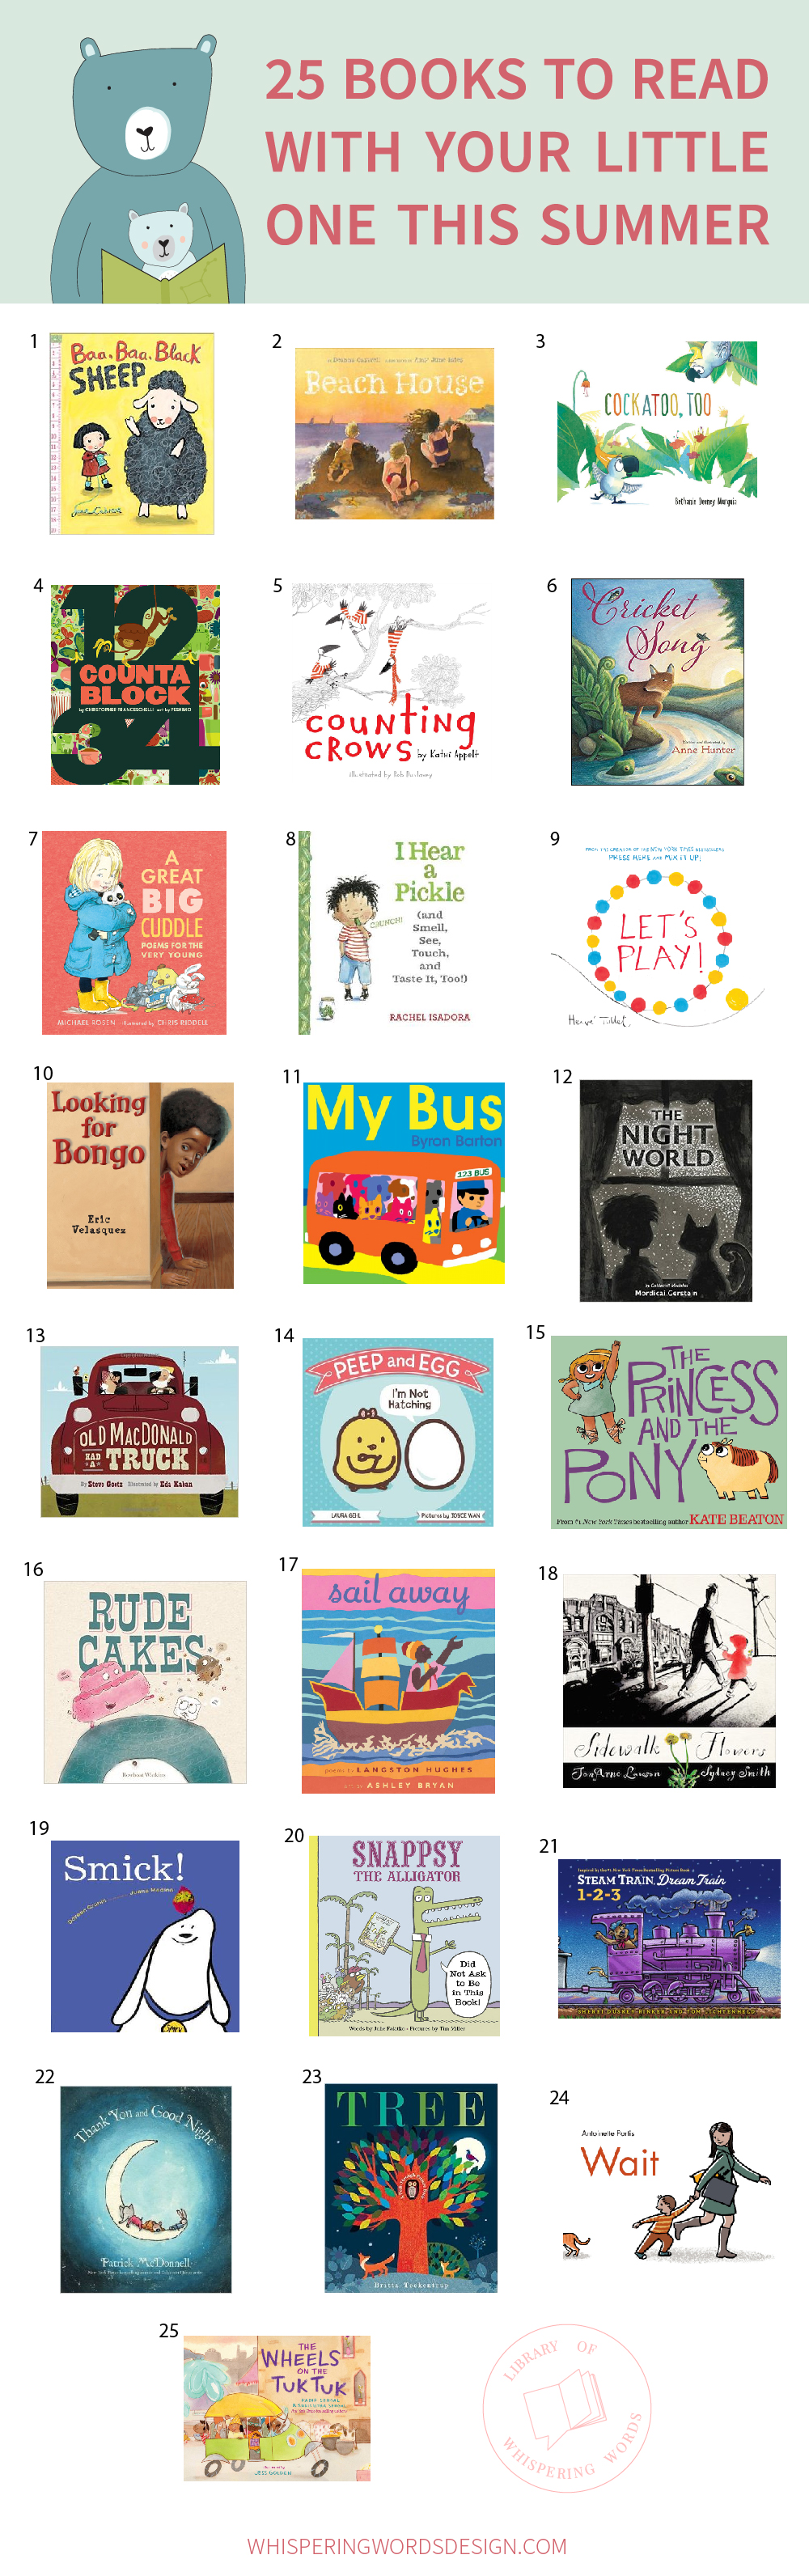 25 Books Birth-PreK WhisperingWordsDesign.jpg